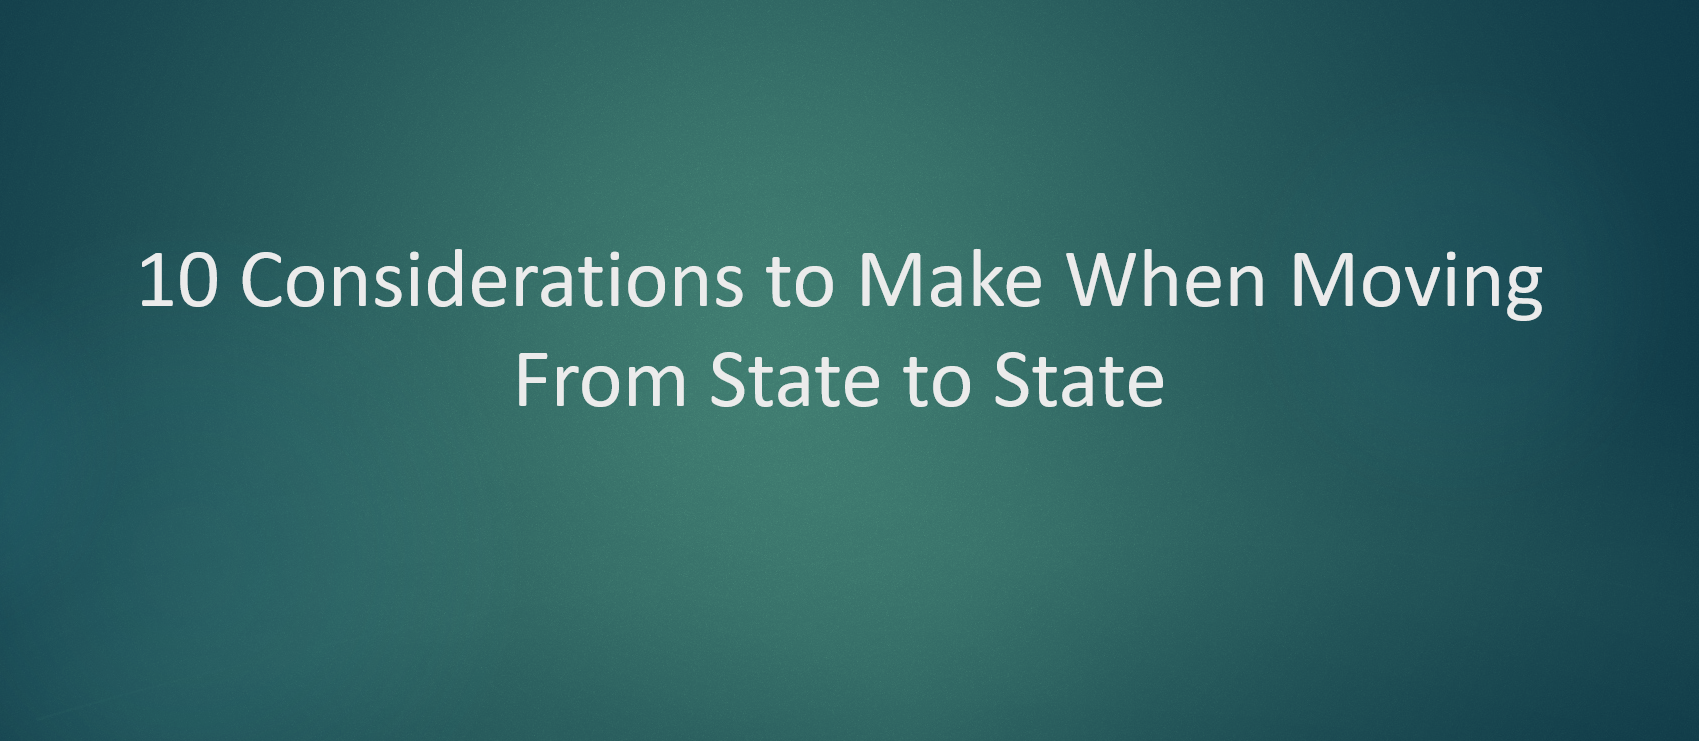 10 Considerations to Make When Moving From State to State